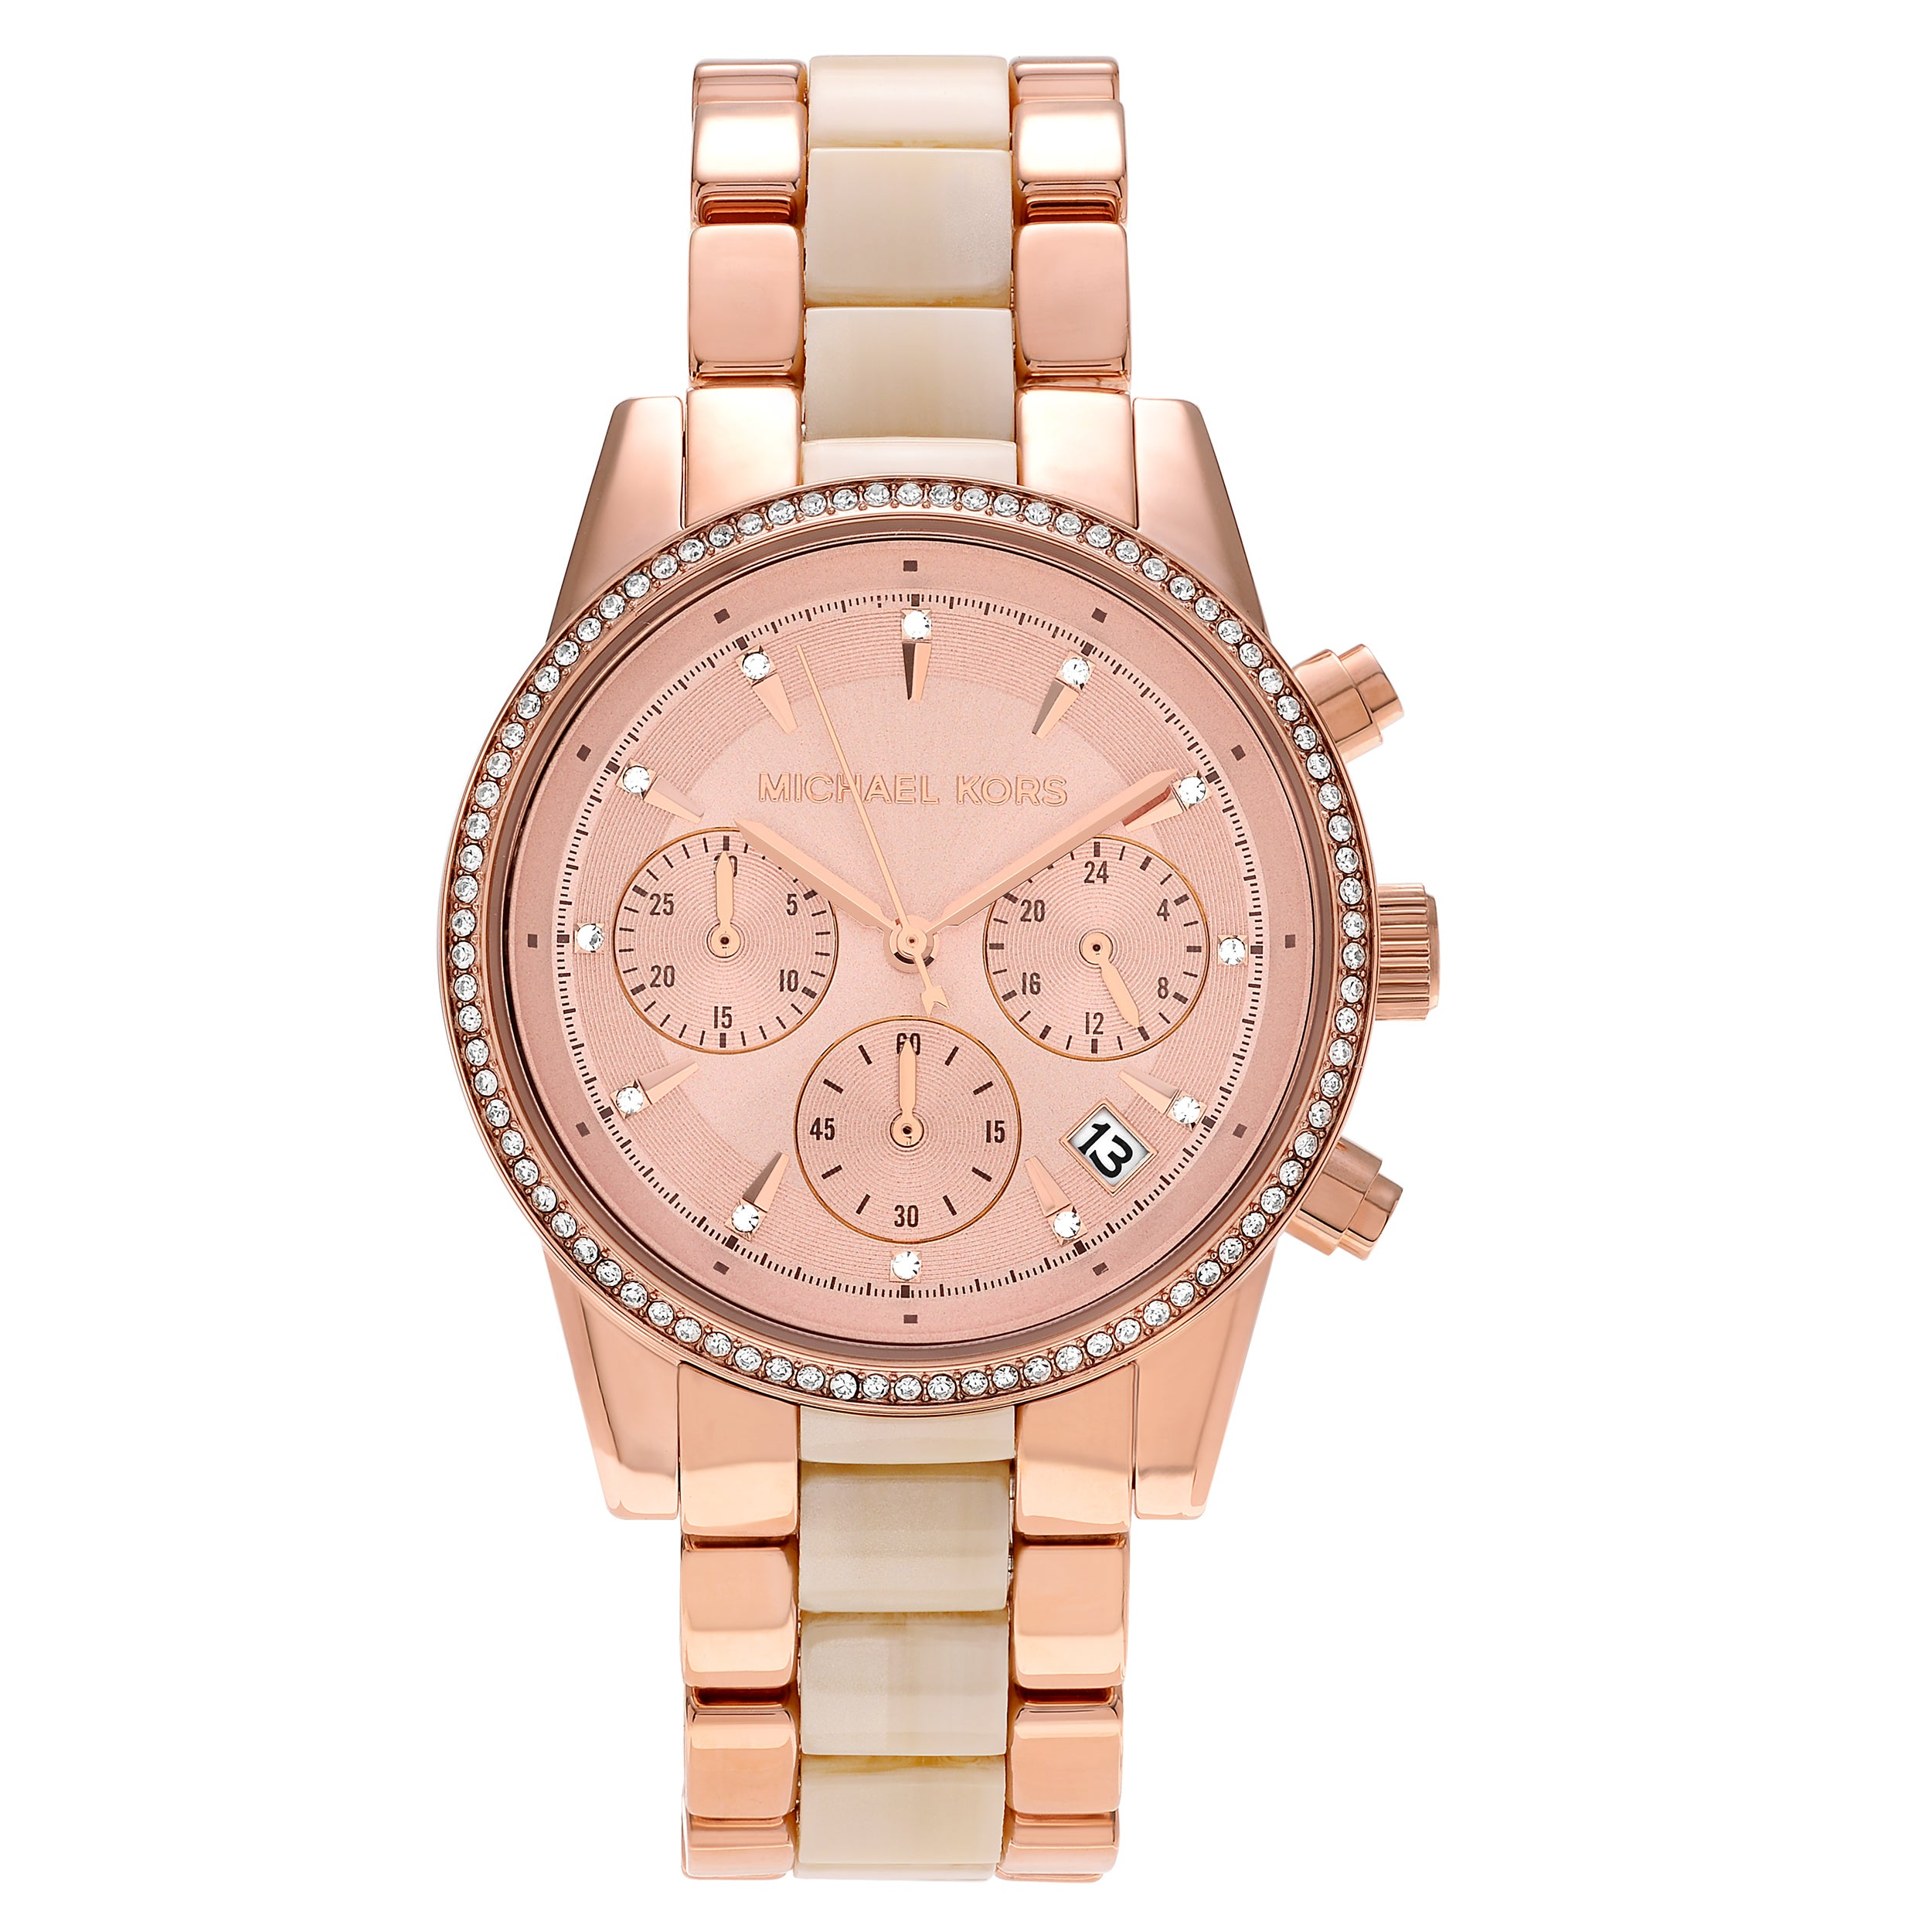 e5f01b57a3b7 Shop Michael Kors Women s MK6493  Ritz  Rose Goldtone Crystal Pave  Chronograph Bracelet Watch - Free Shipping Today - Overstock - 17908232